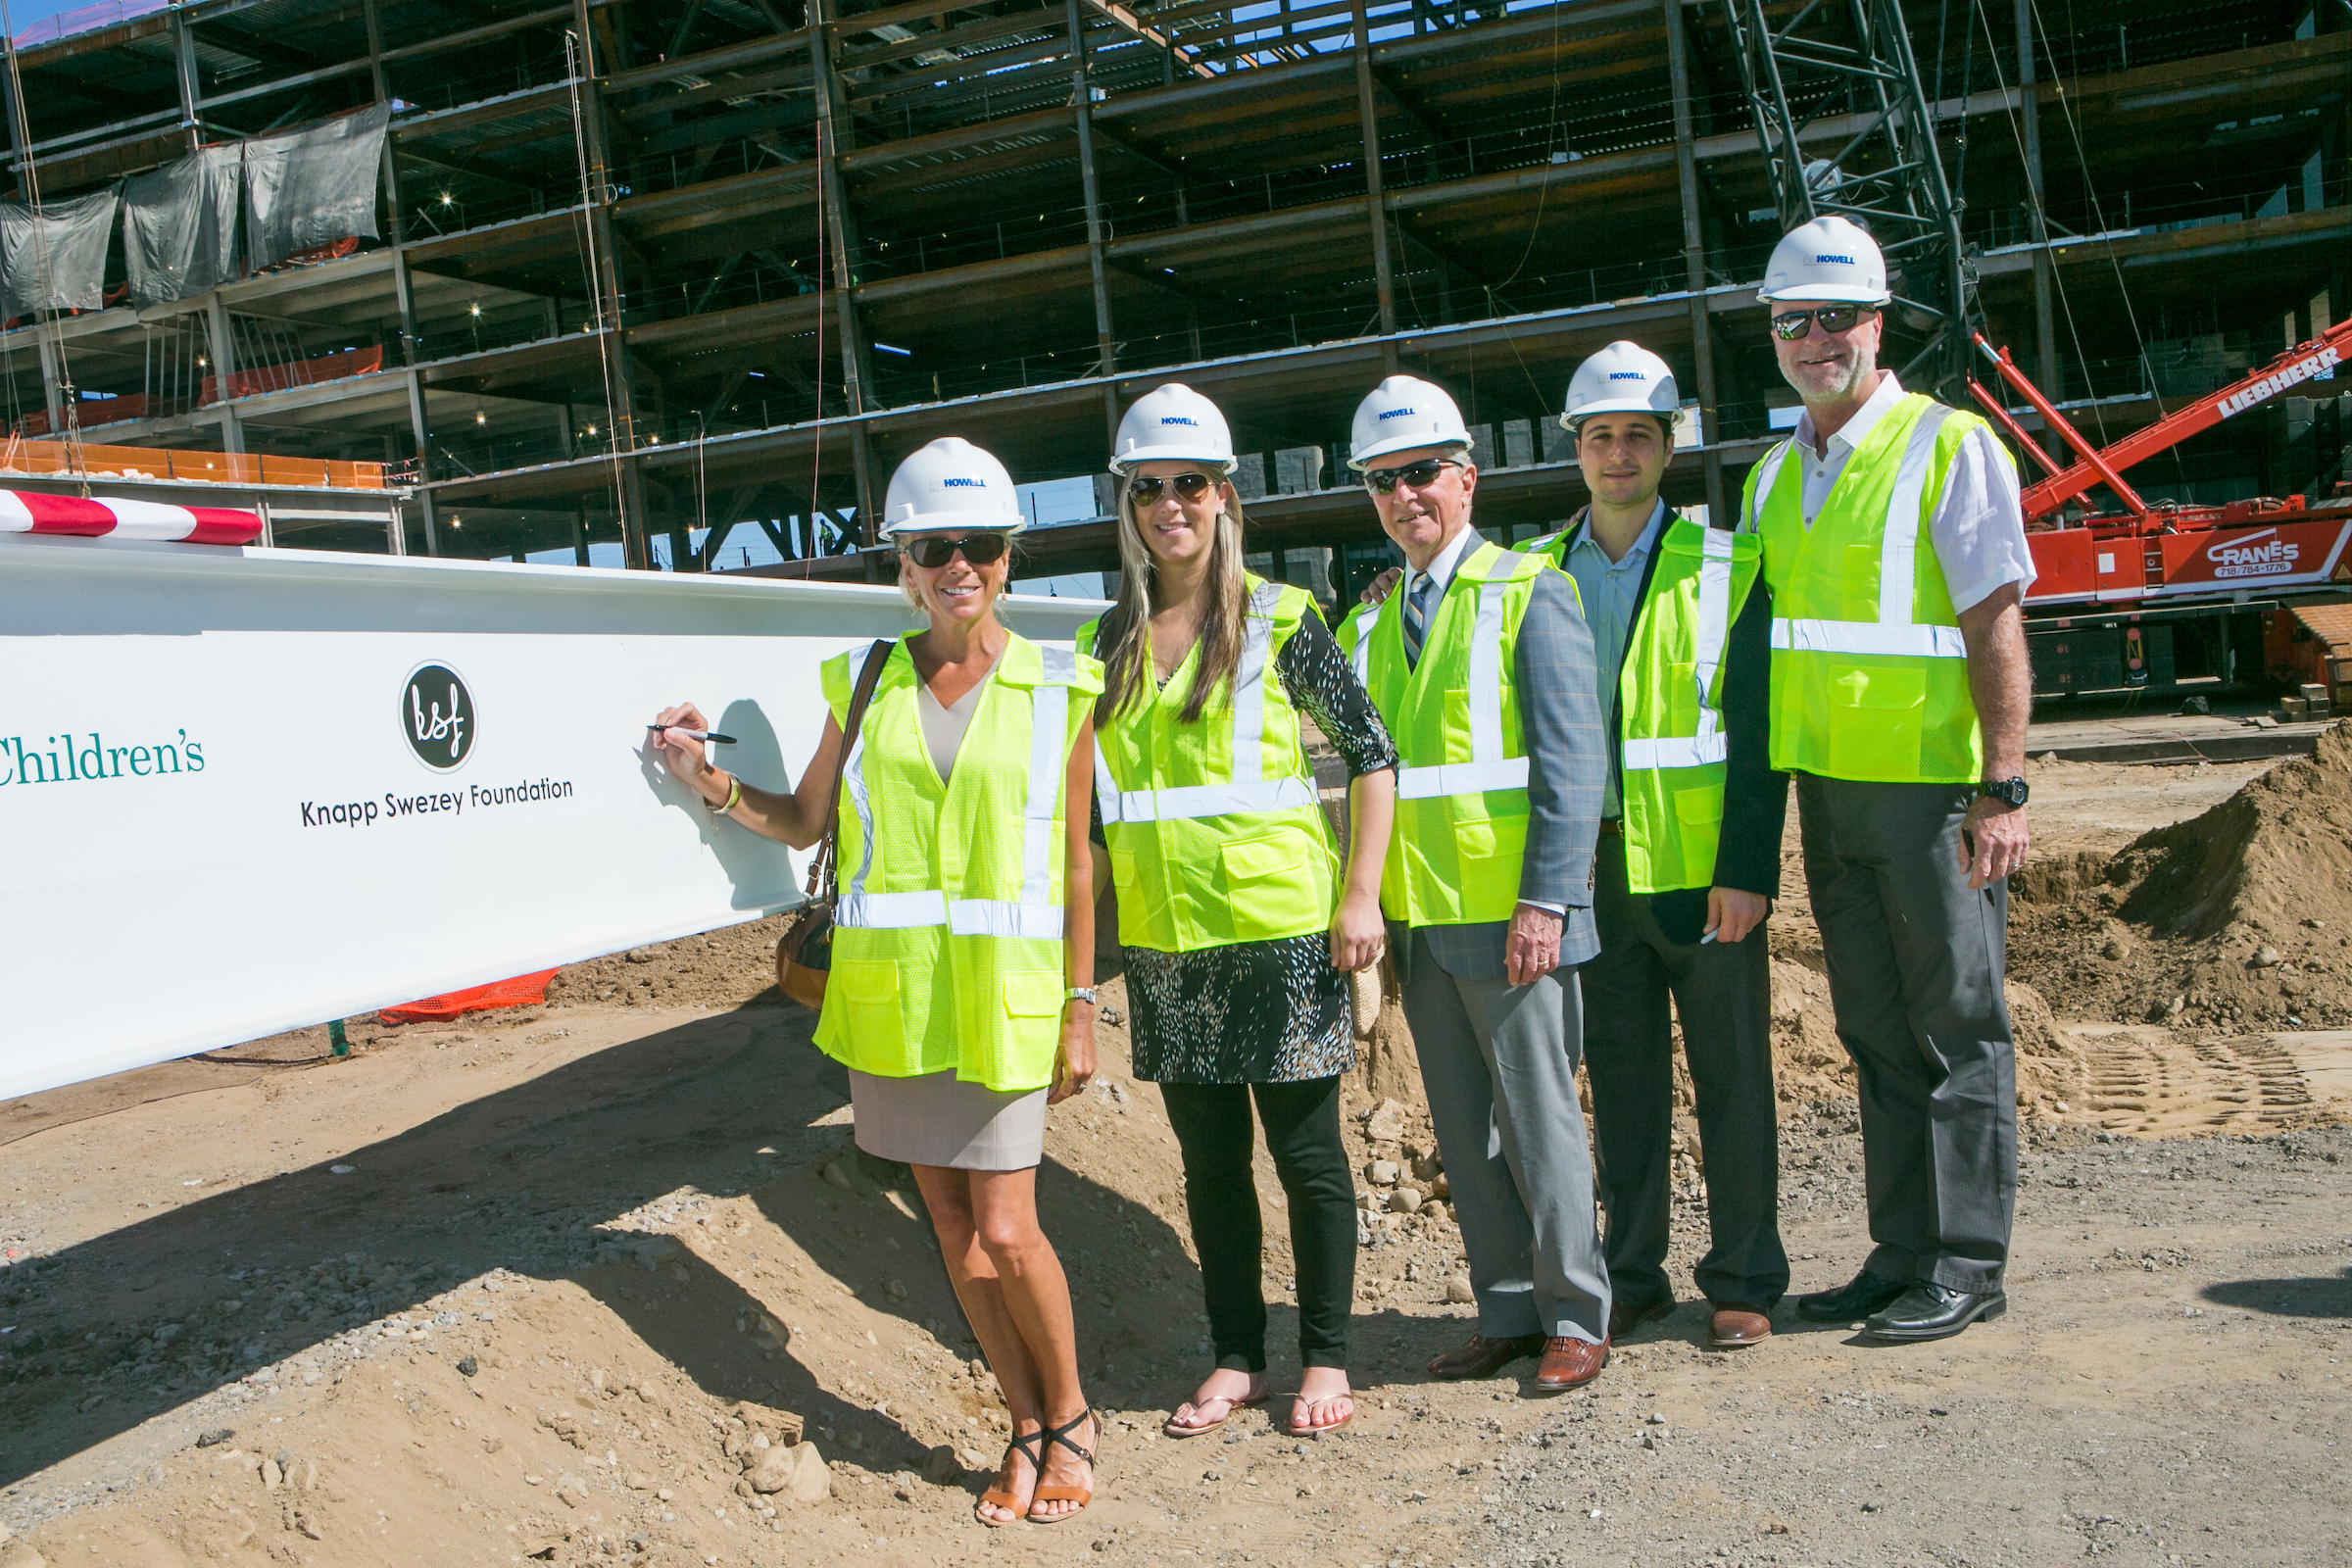 Stony Brook, NY; Stony Brook University Medical Center: Children's Hospital Topping Off Ceremony (7/24/15)  Knapp-Swezey family